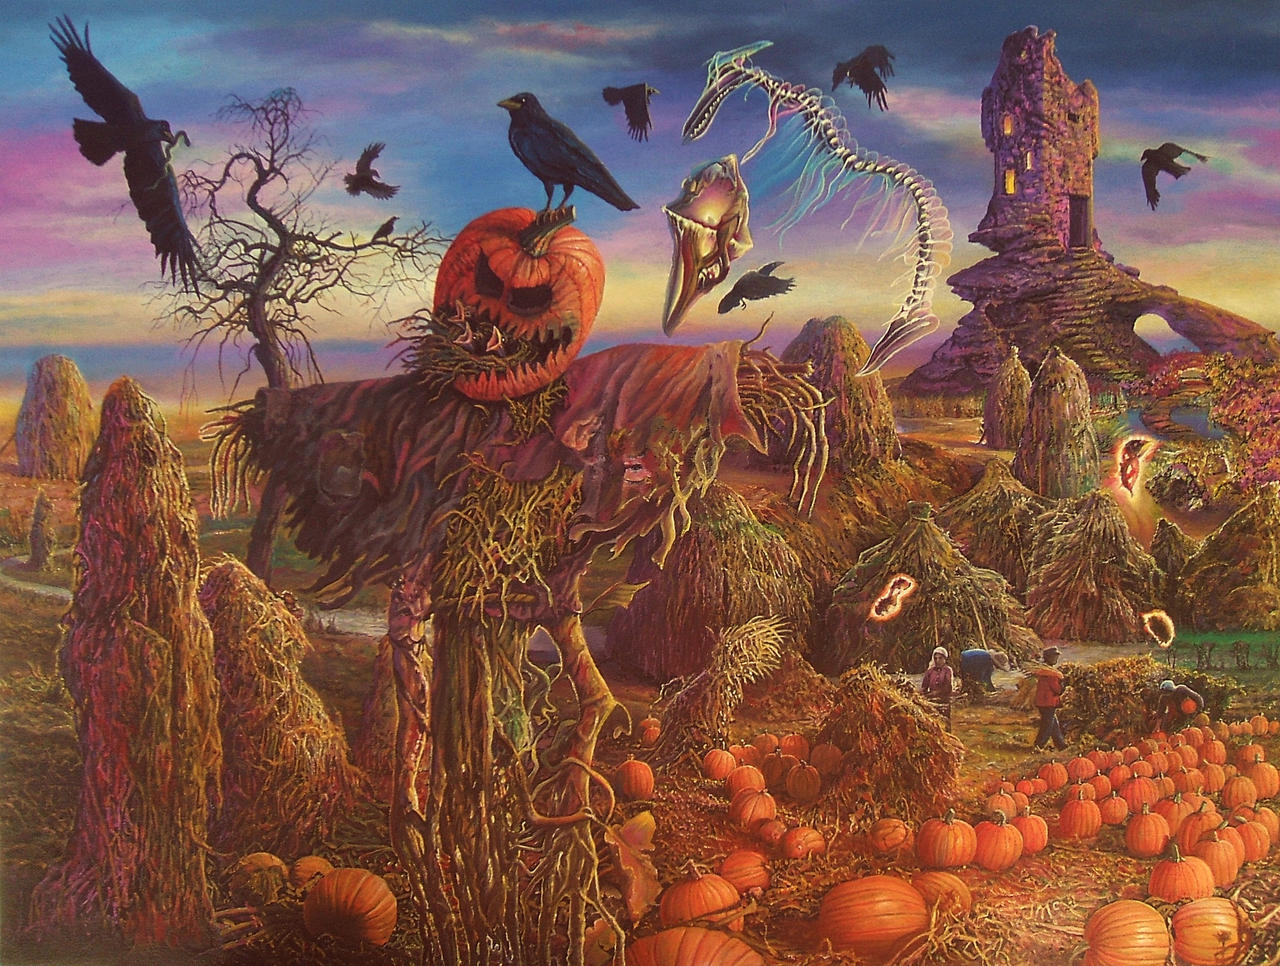 'Autumn Harvest' by Tolkyes